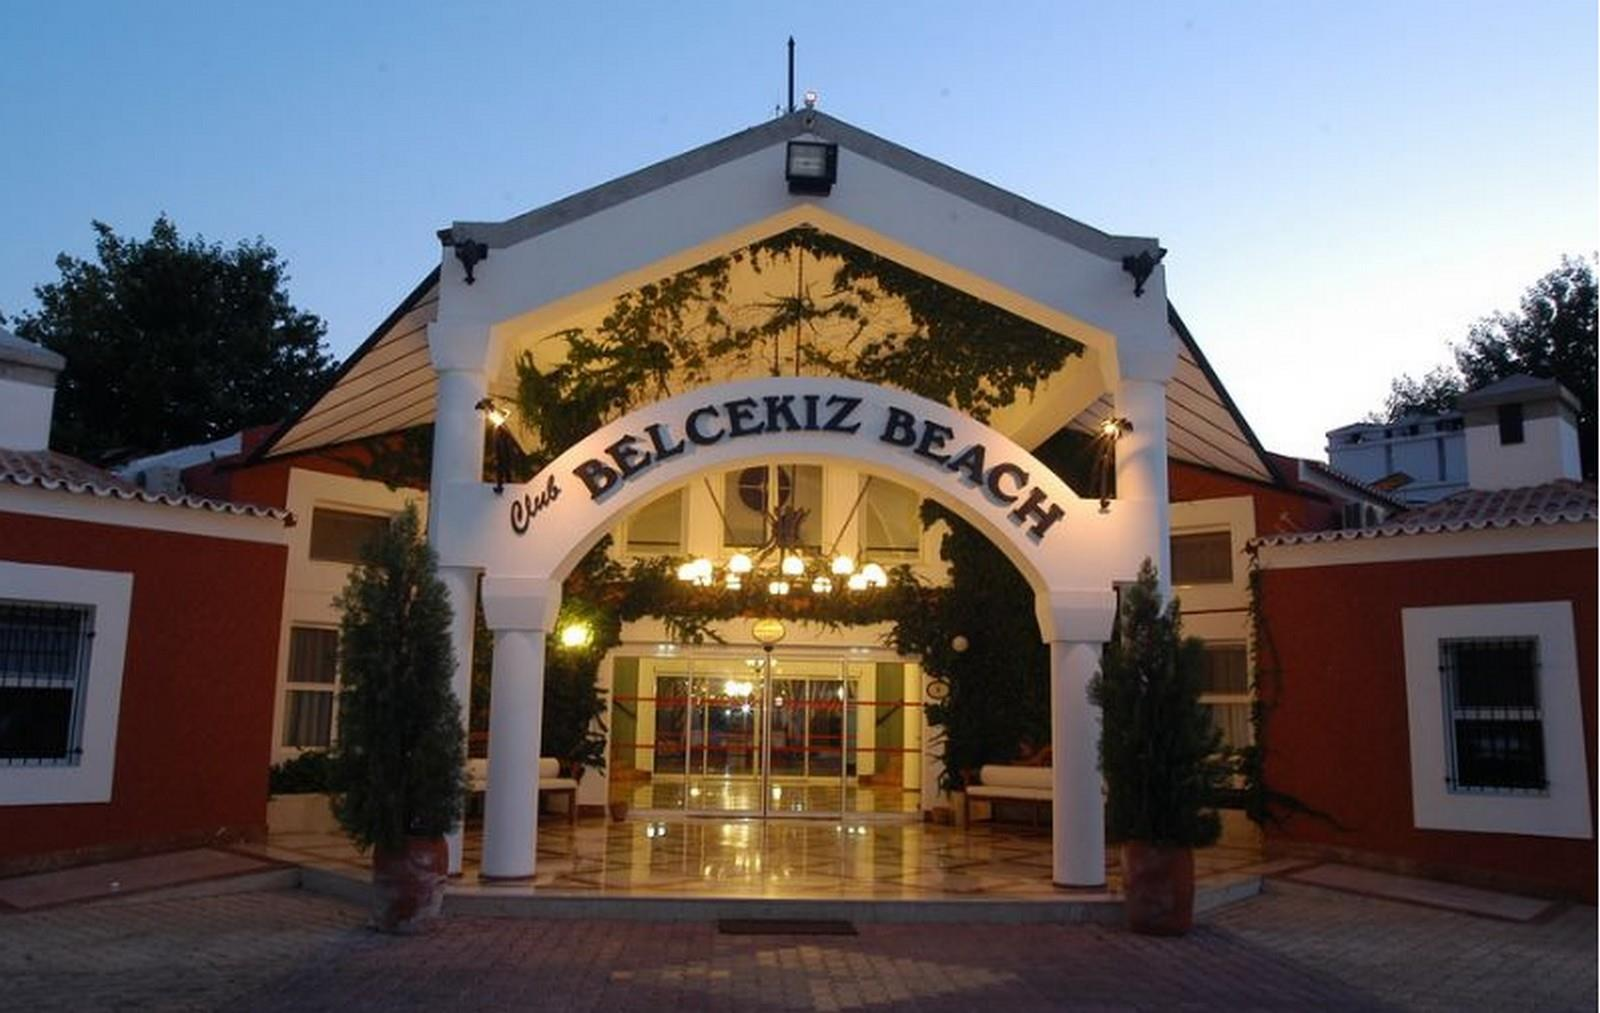 CLUB BELCEKIZ BEACH RESORT HOTEL